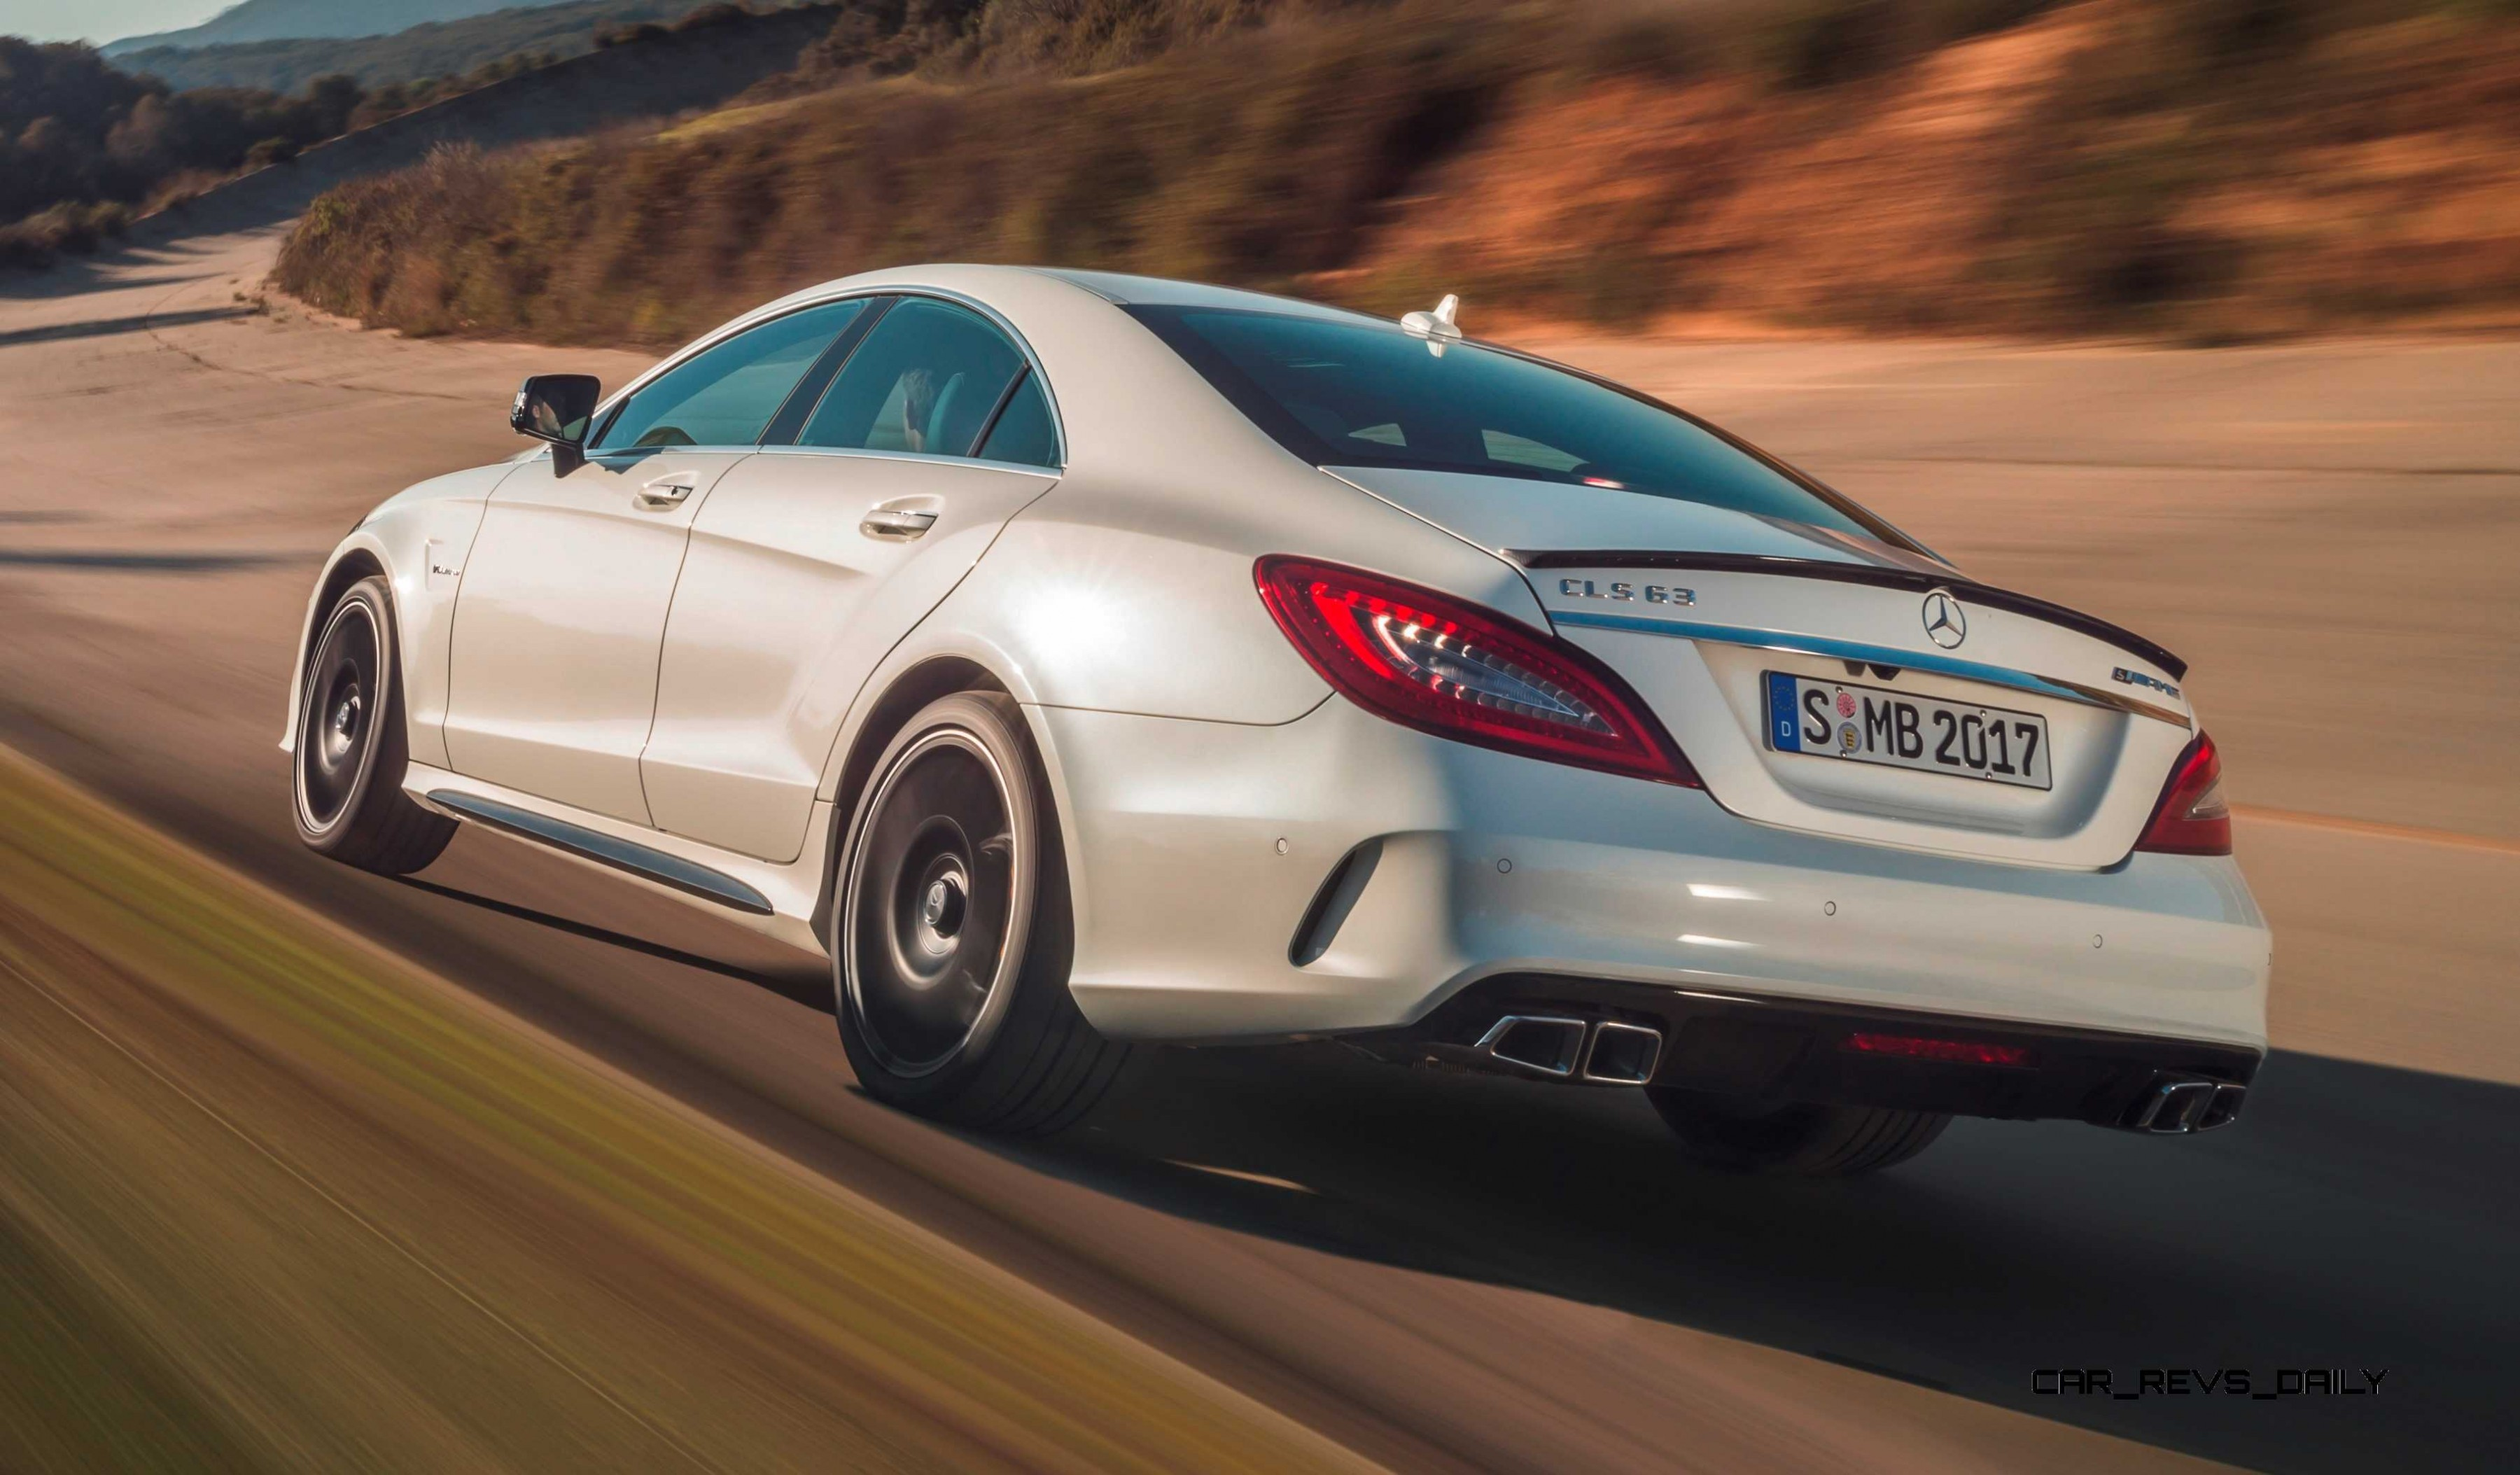 Mercedes benz cls 550 2015 bing images for 550 amg mercedes benz